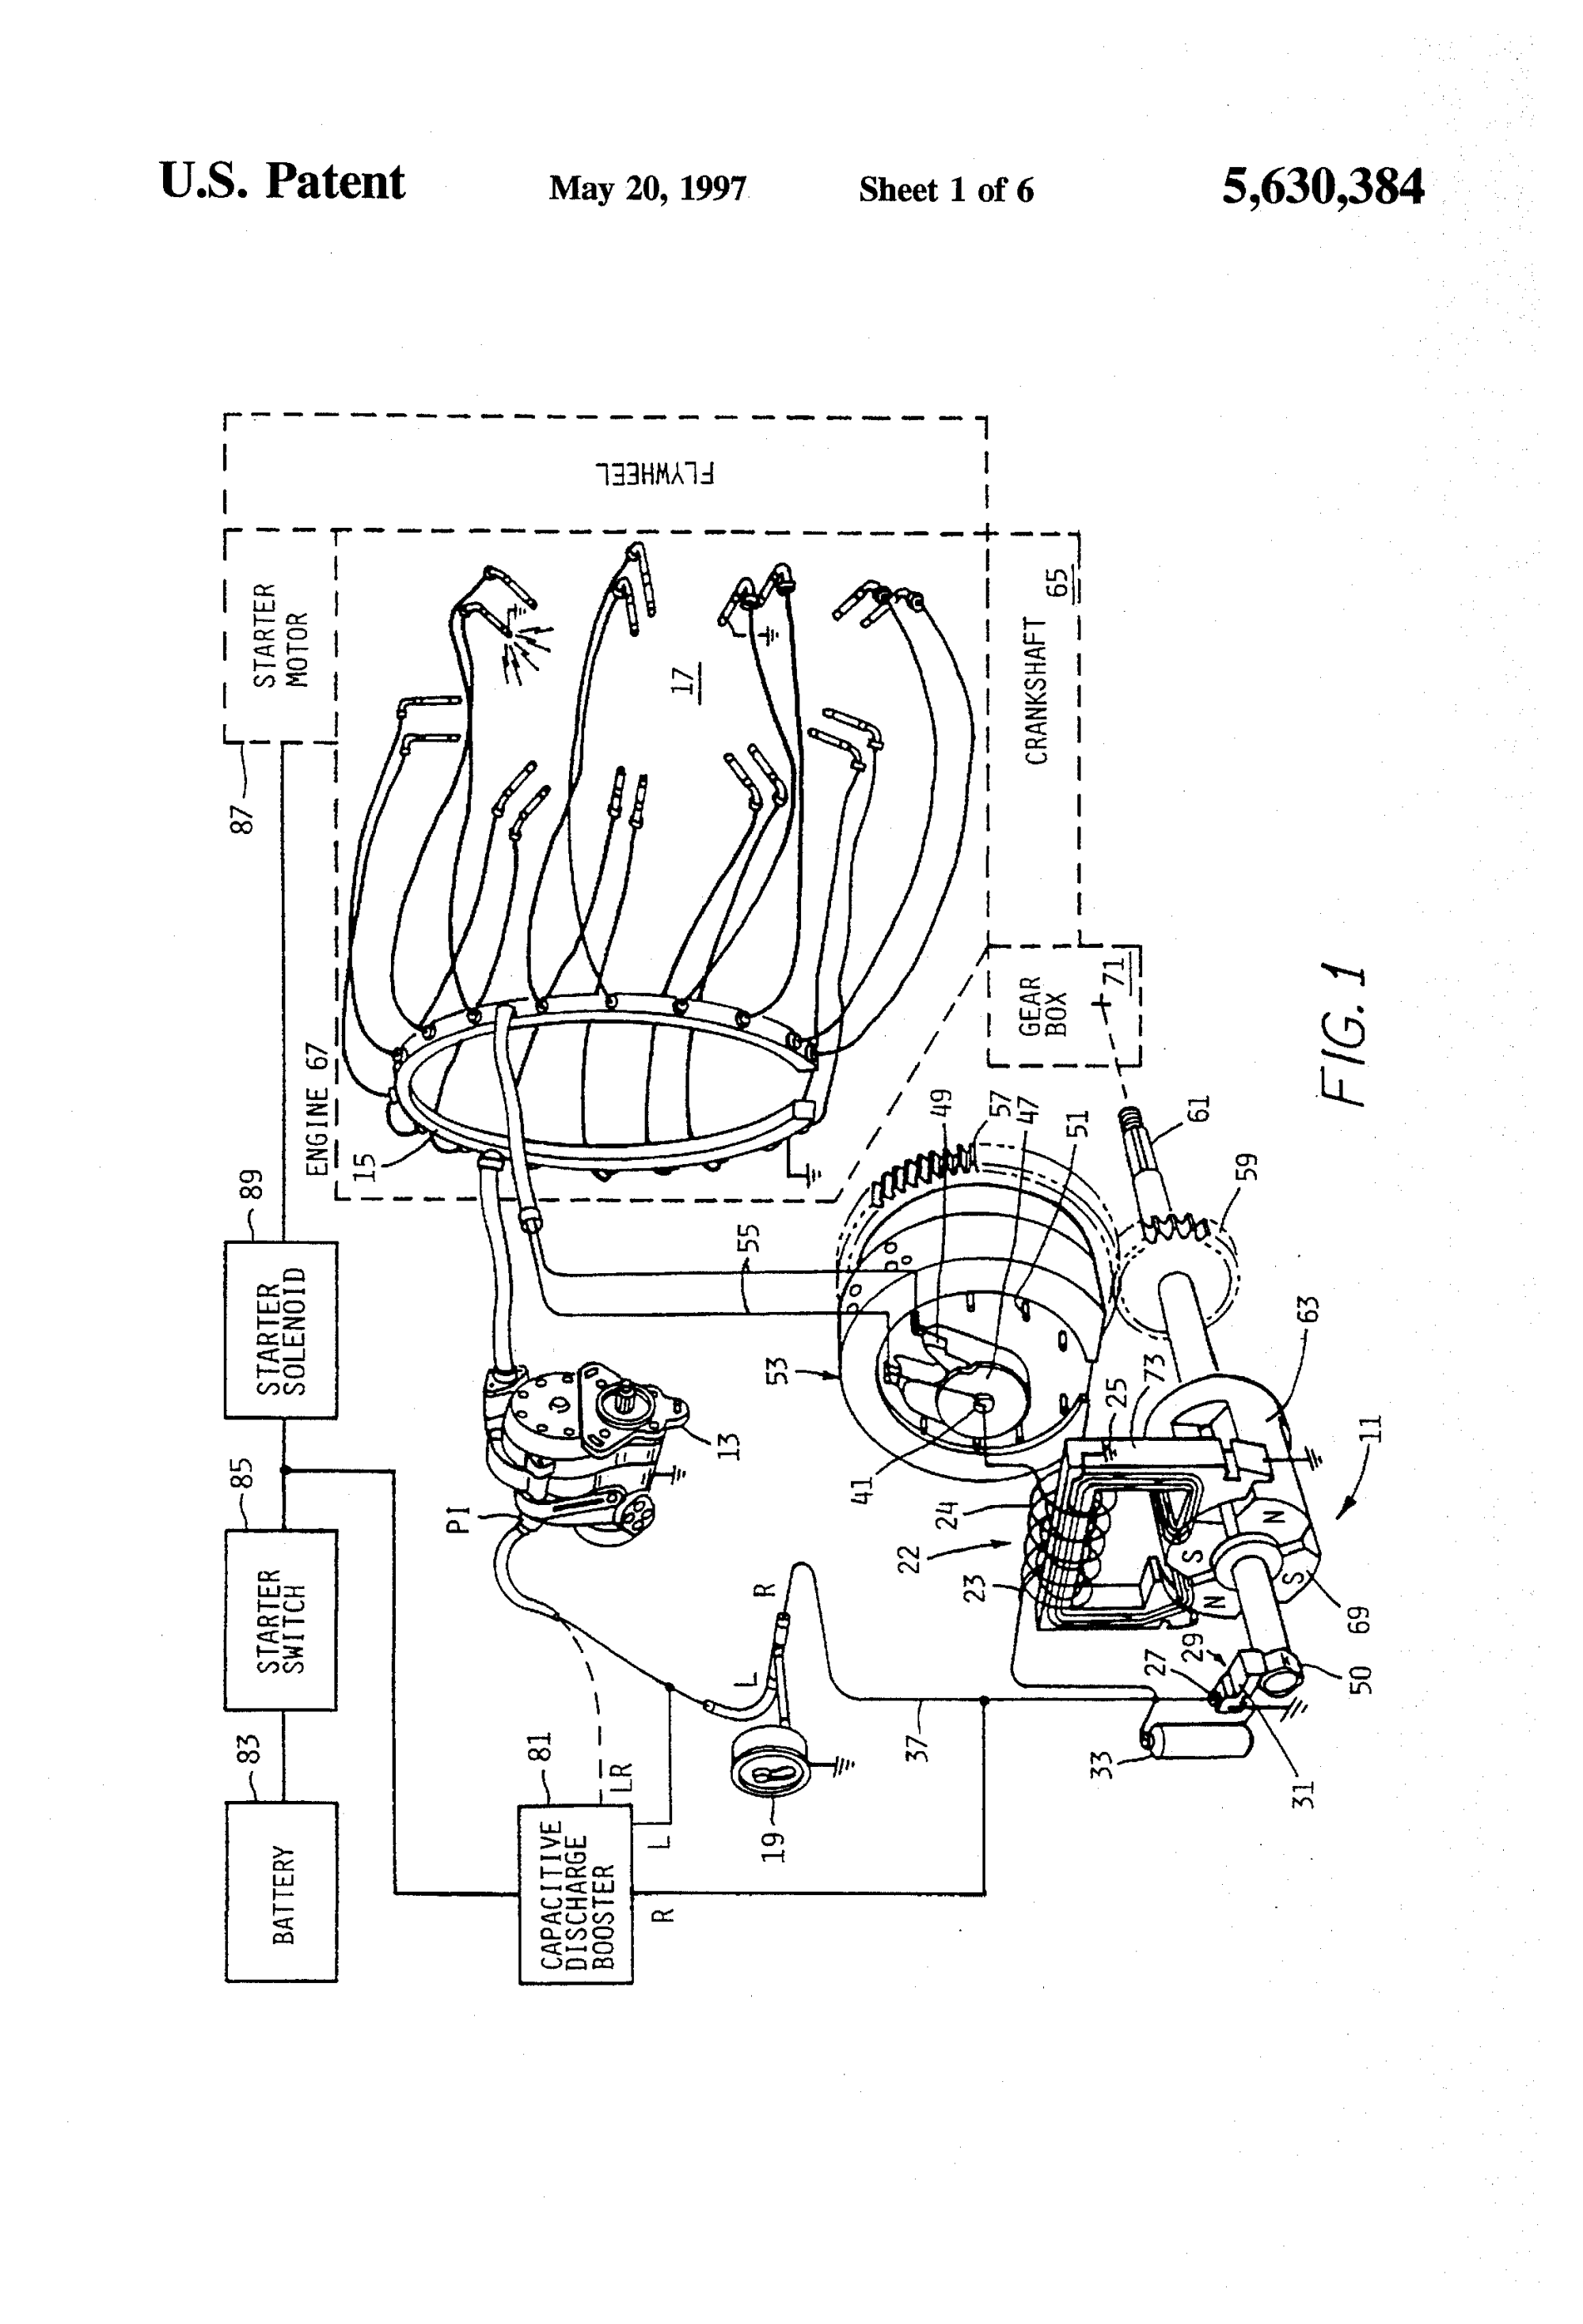 hight resolution of bendix magneto wiring diagram simple wiring diagrams magneto wiring schematic scat back aircraft magneto wiring